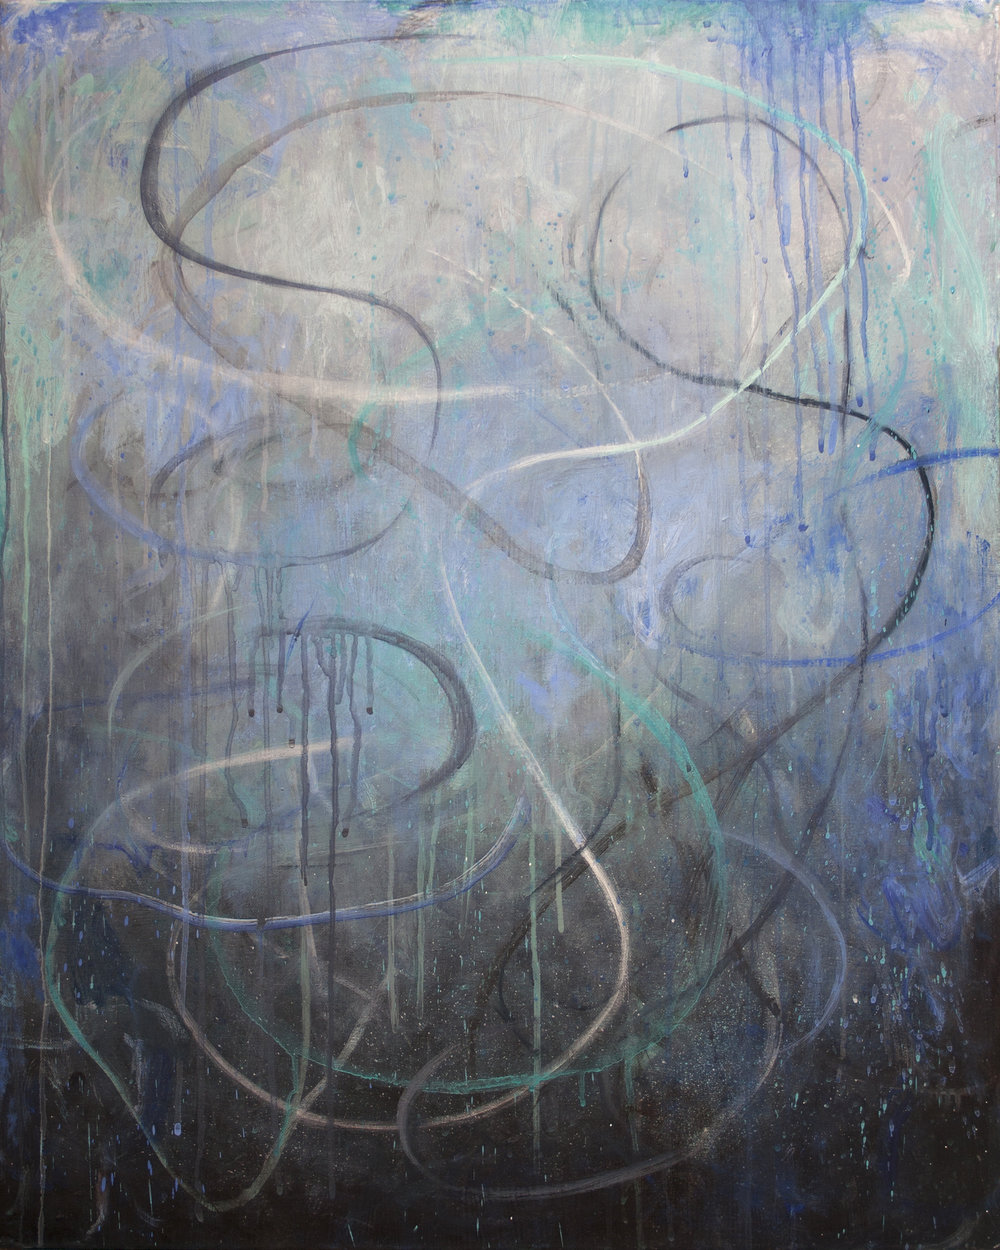 """Deluge"", 30"" x 24"", mixed media on canvas"